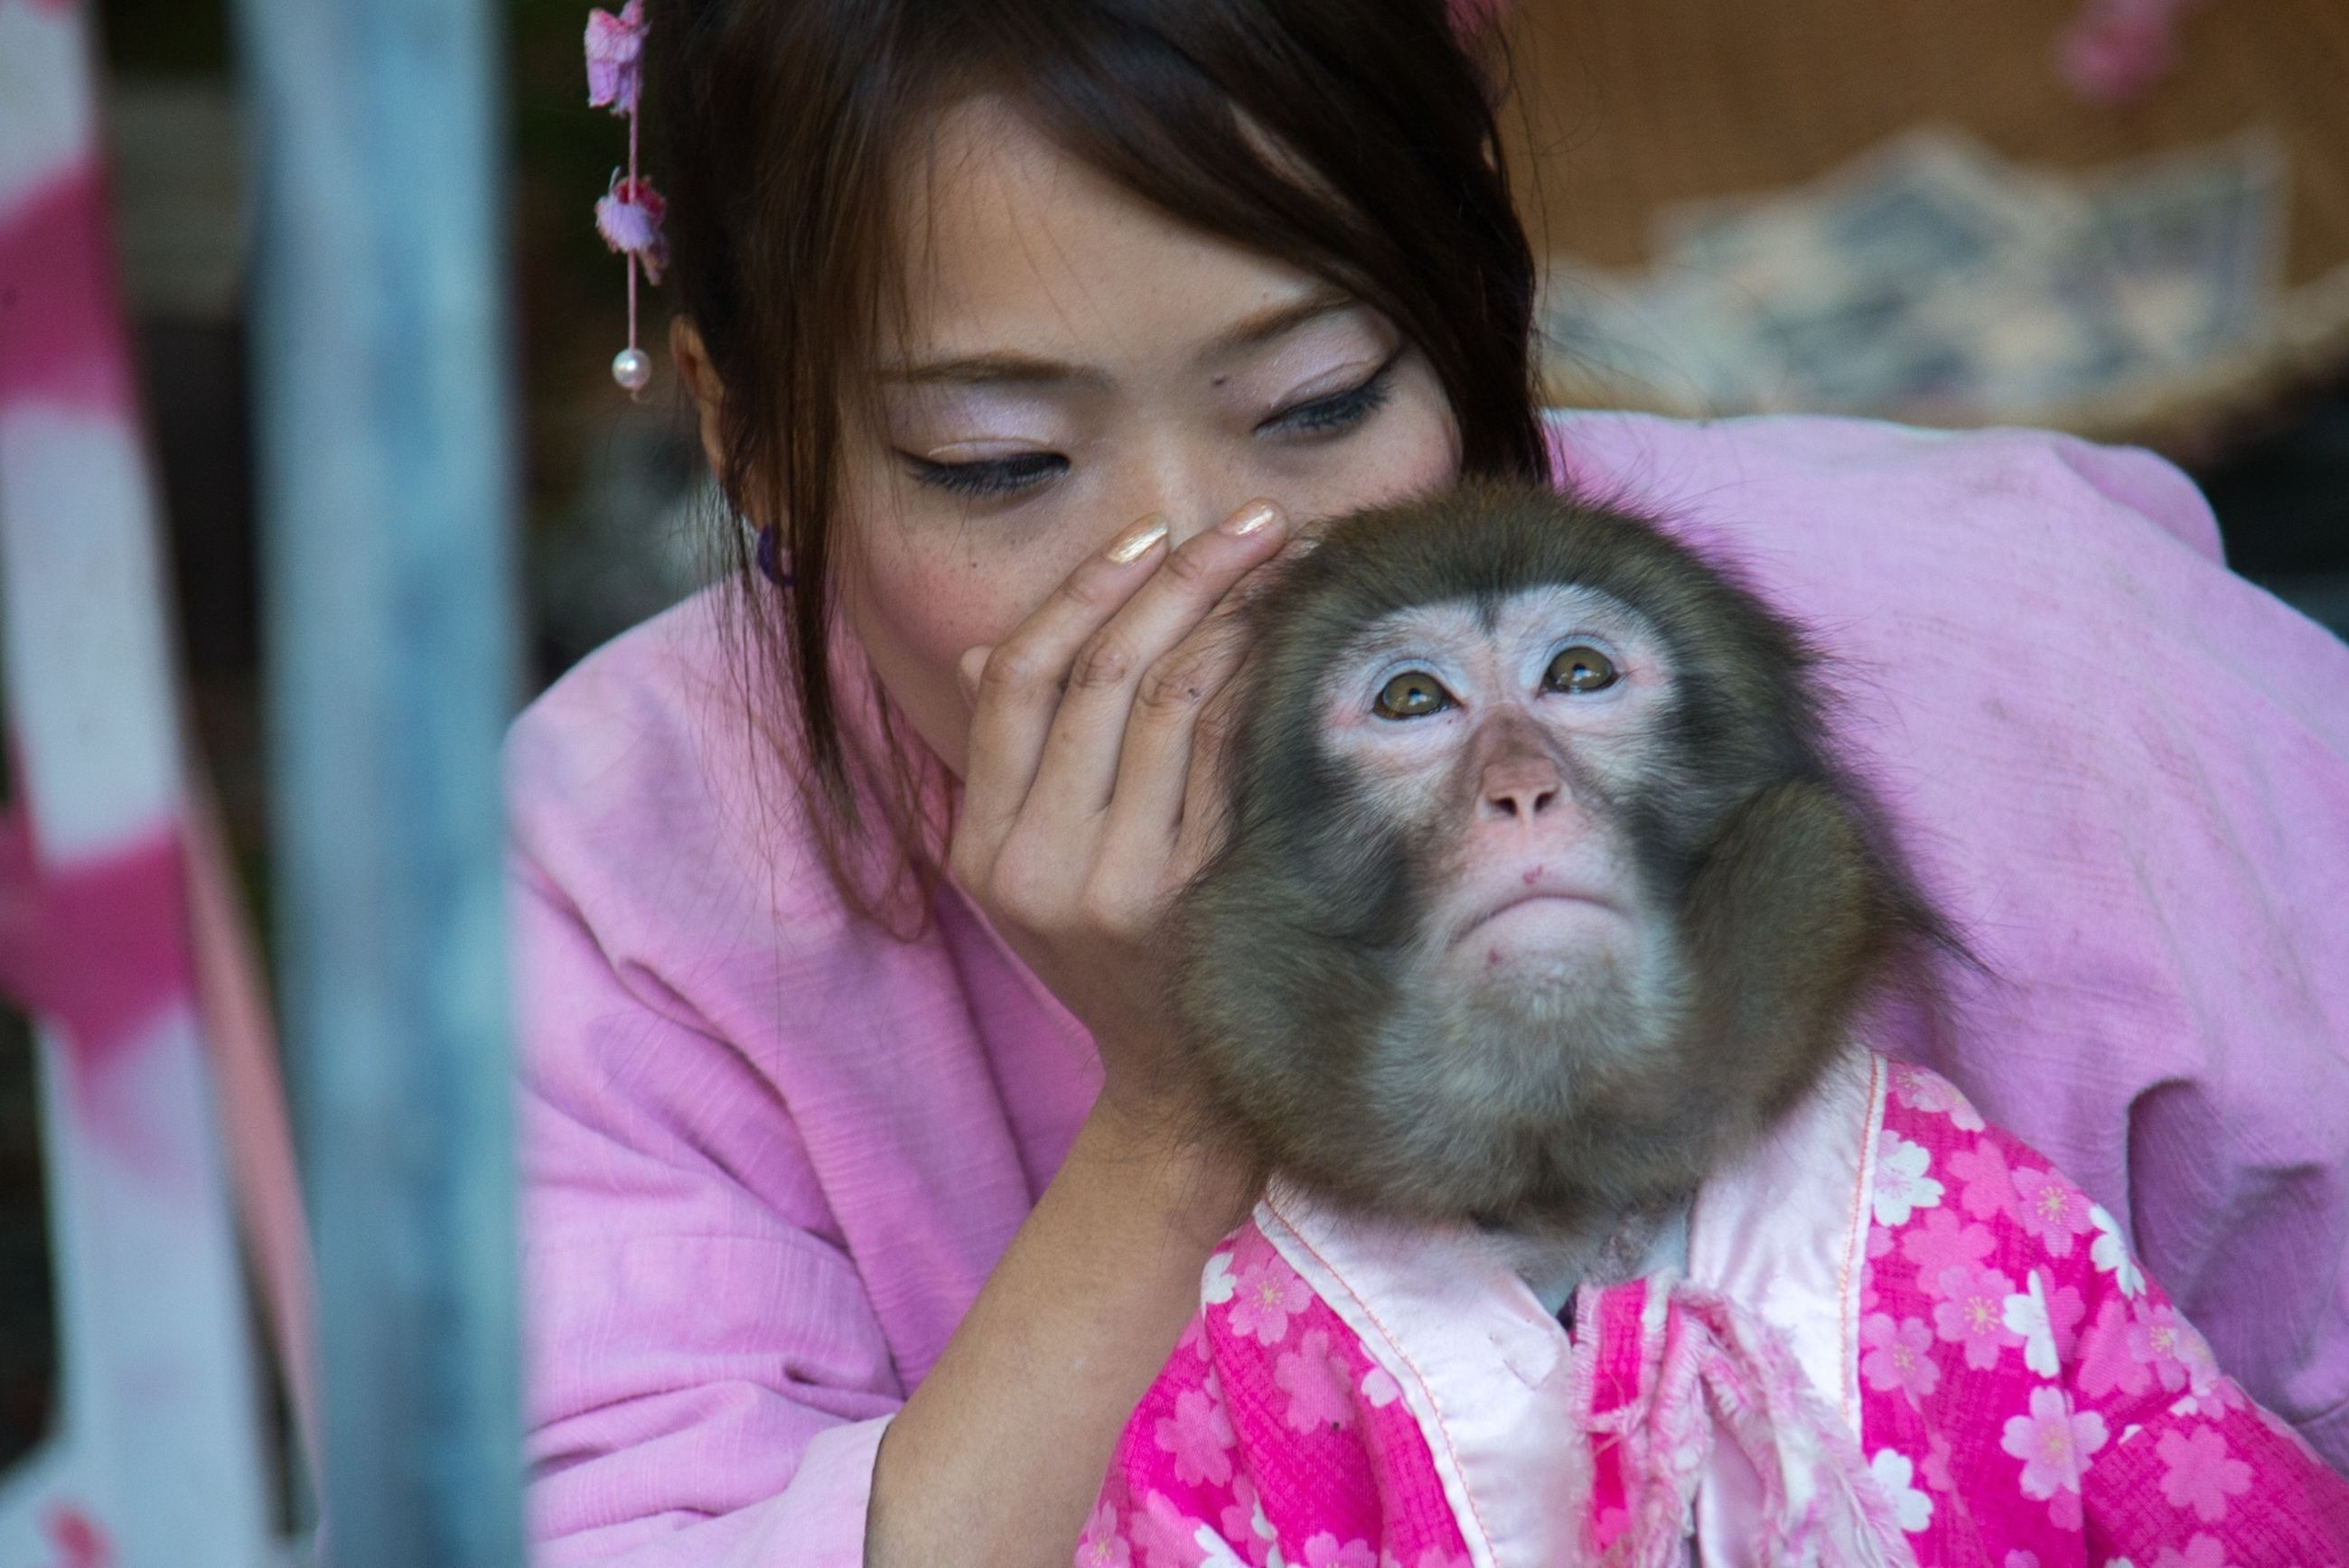 animal themes, one animal, cute, portrait, focus on foreground, looking at camera, person, innocence, elementary age, close-up, childhood, front view, headshot, smiling, one person, mammal, sitting, pets, monkey